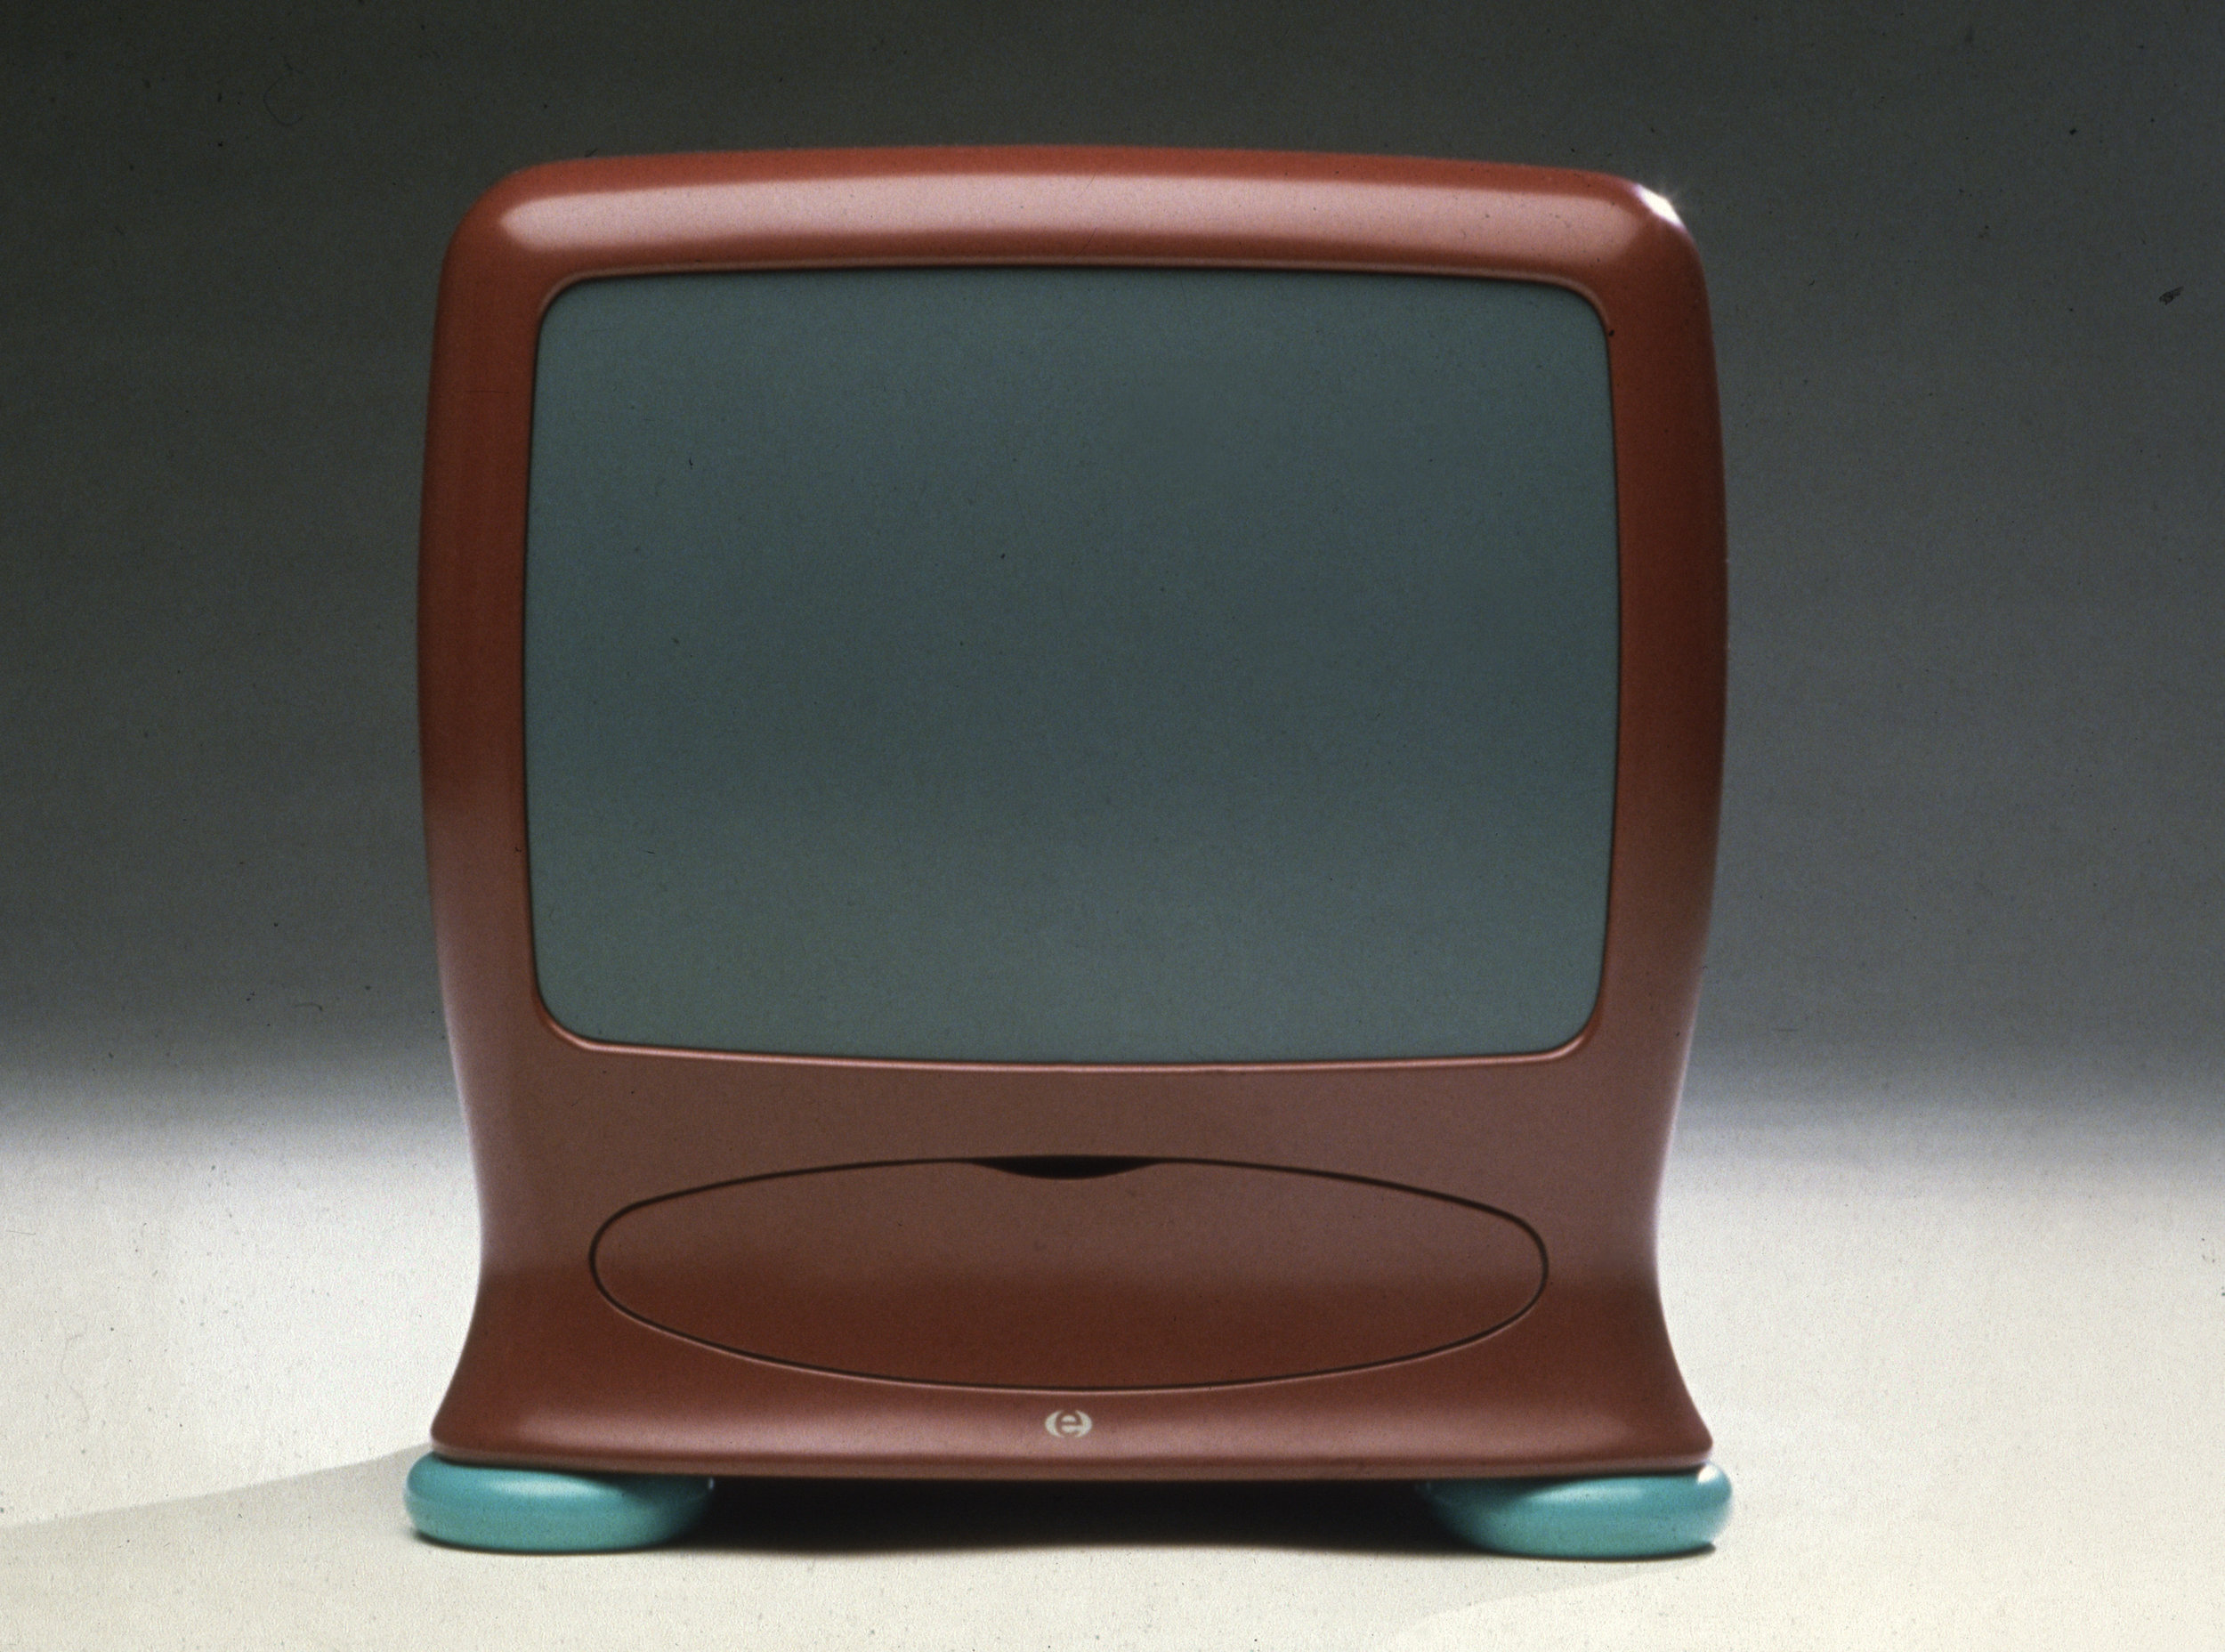 1994_e-product_TV_front.jpg